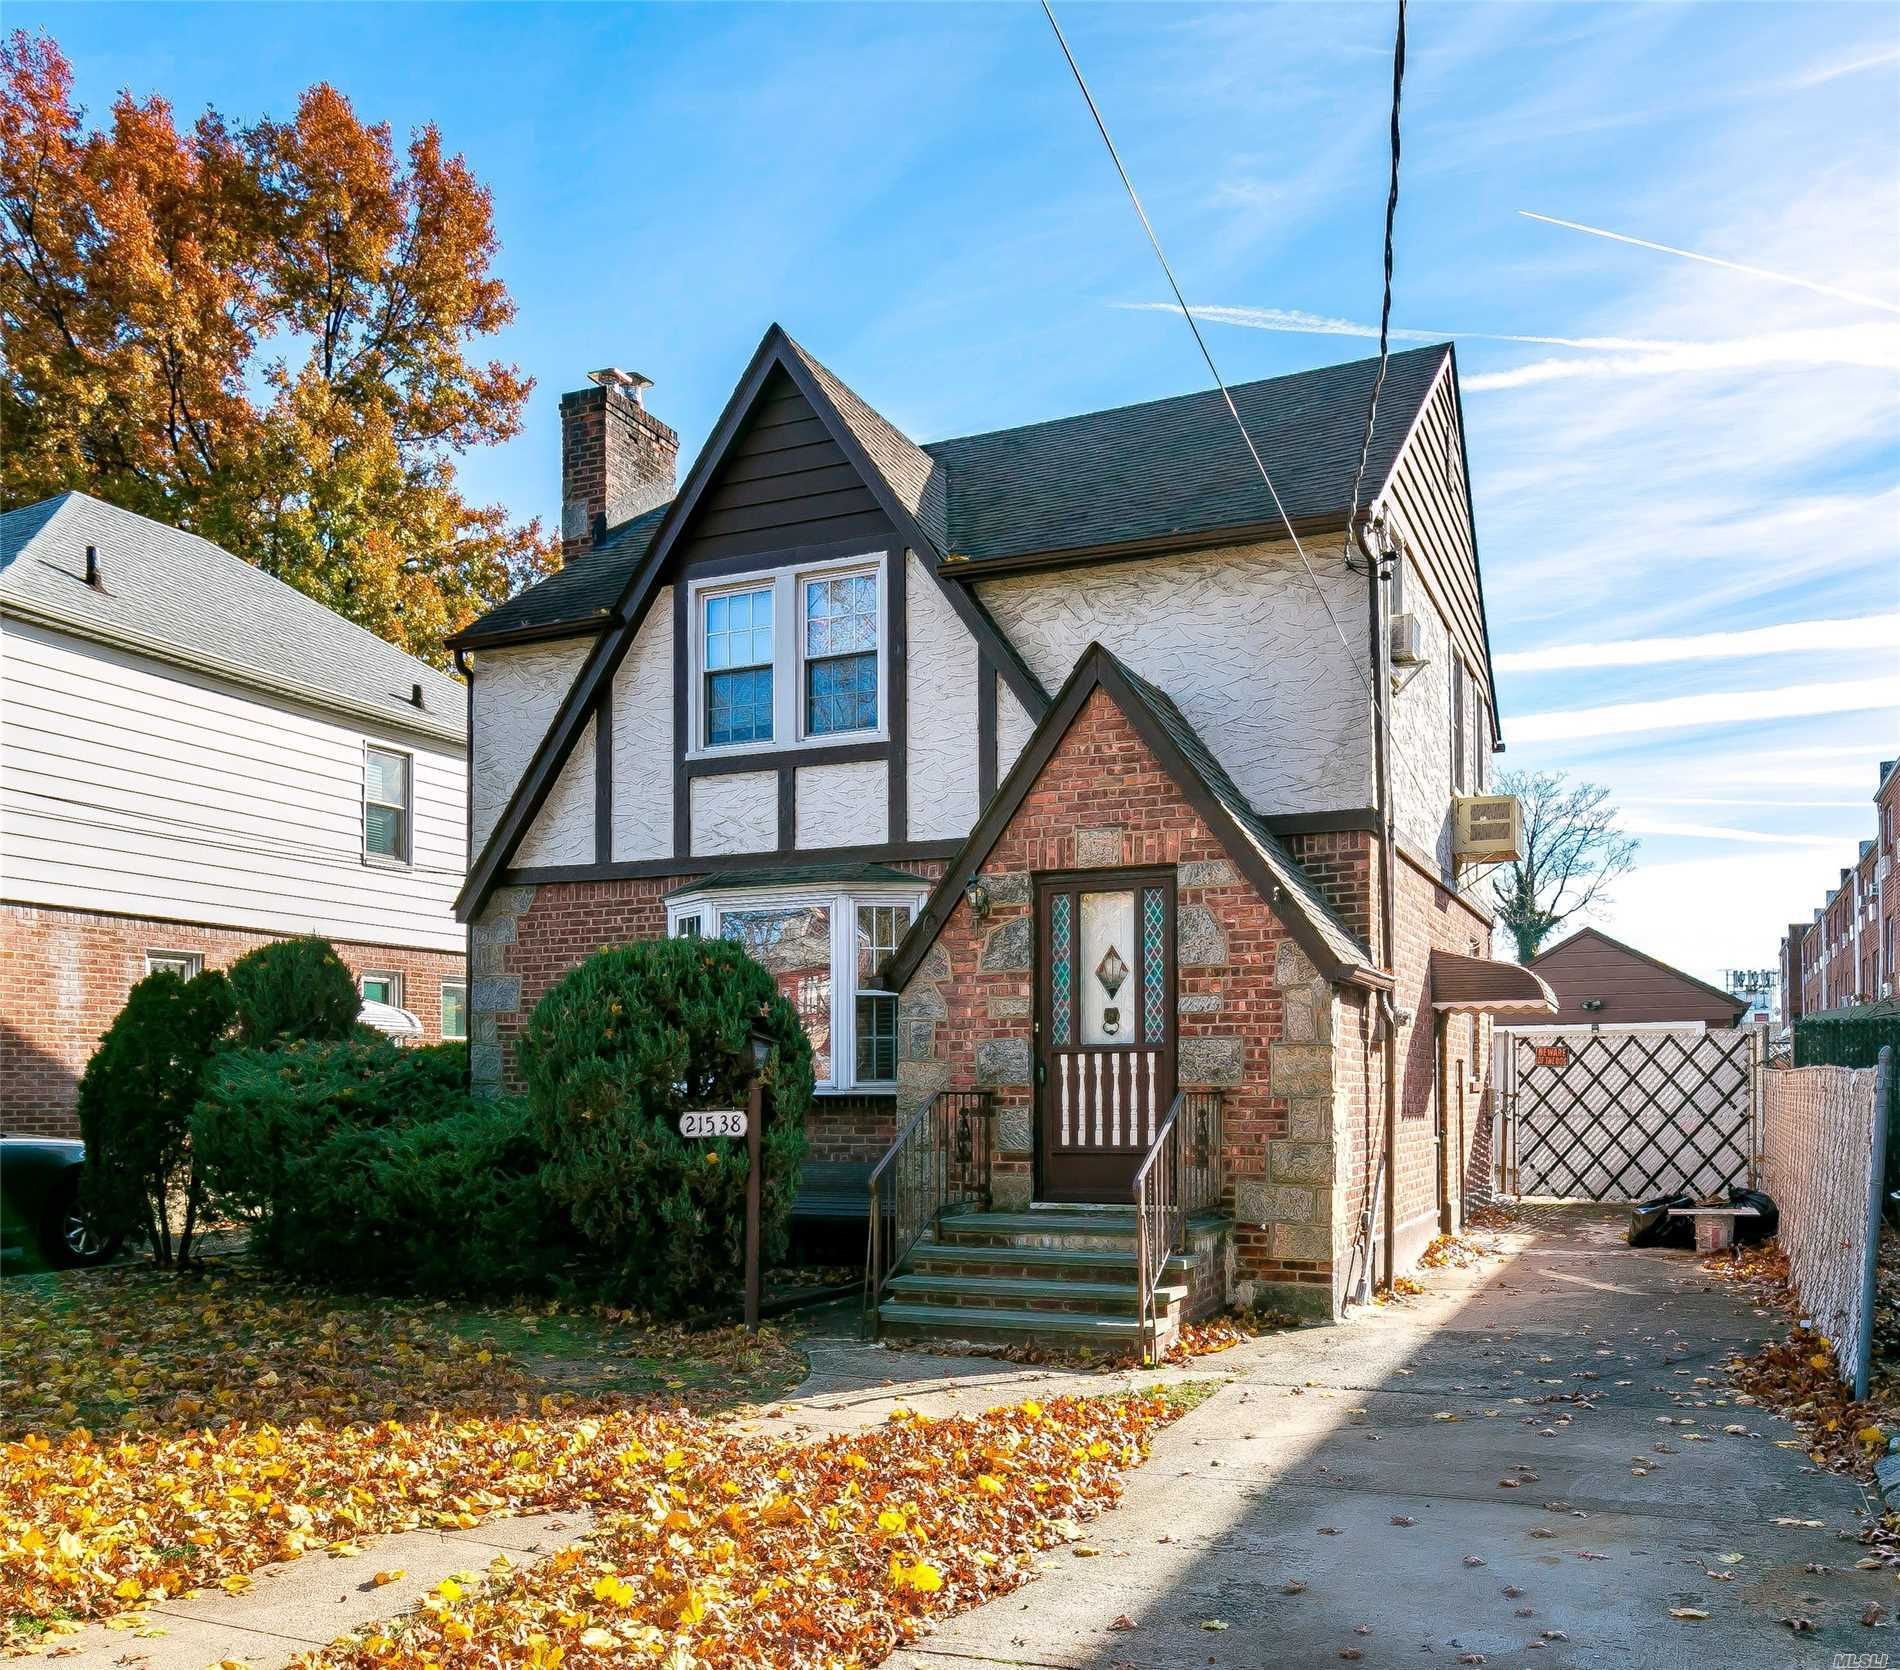 Beautiful Brick Colonial With Detached Garage On 40X100 Lot, In Prime Location, Zoning: R3X, Gas Heating. 1 Block To N. Blvd, 5 Blocks To Bell Blvd [Lirr], 1 Block To Express Bus To Nyc, Q13 To Flushing, Easy Access To Major Transportation.